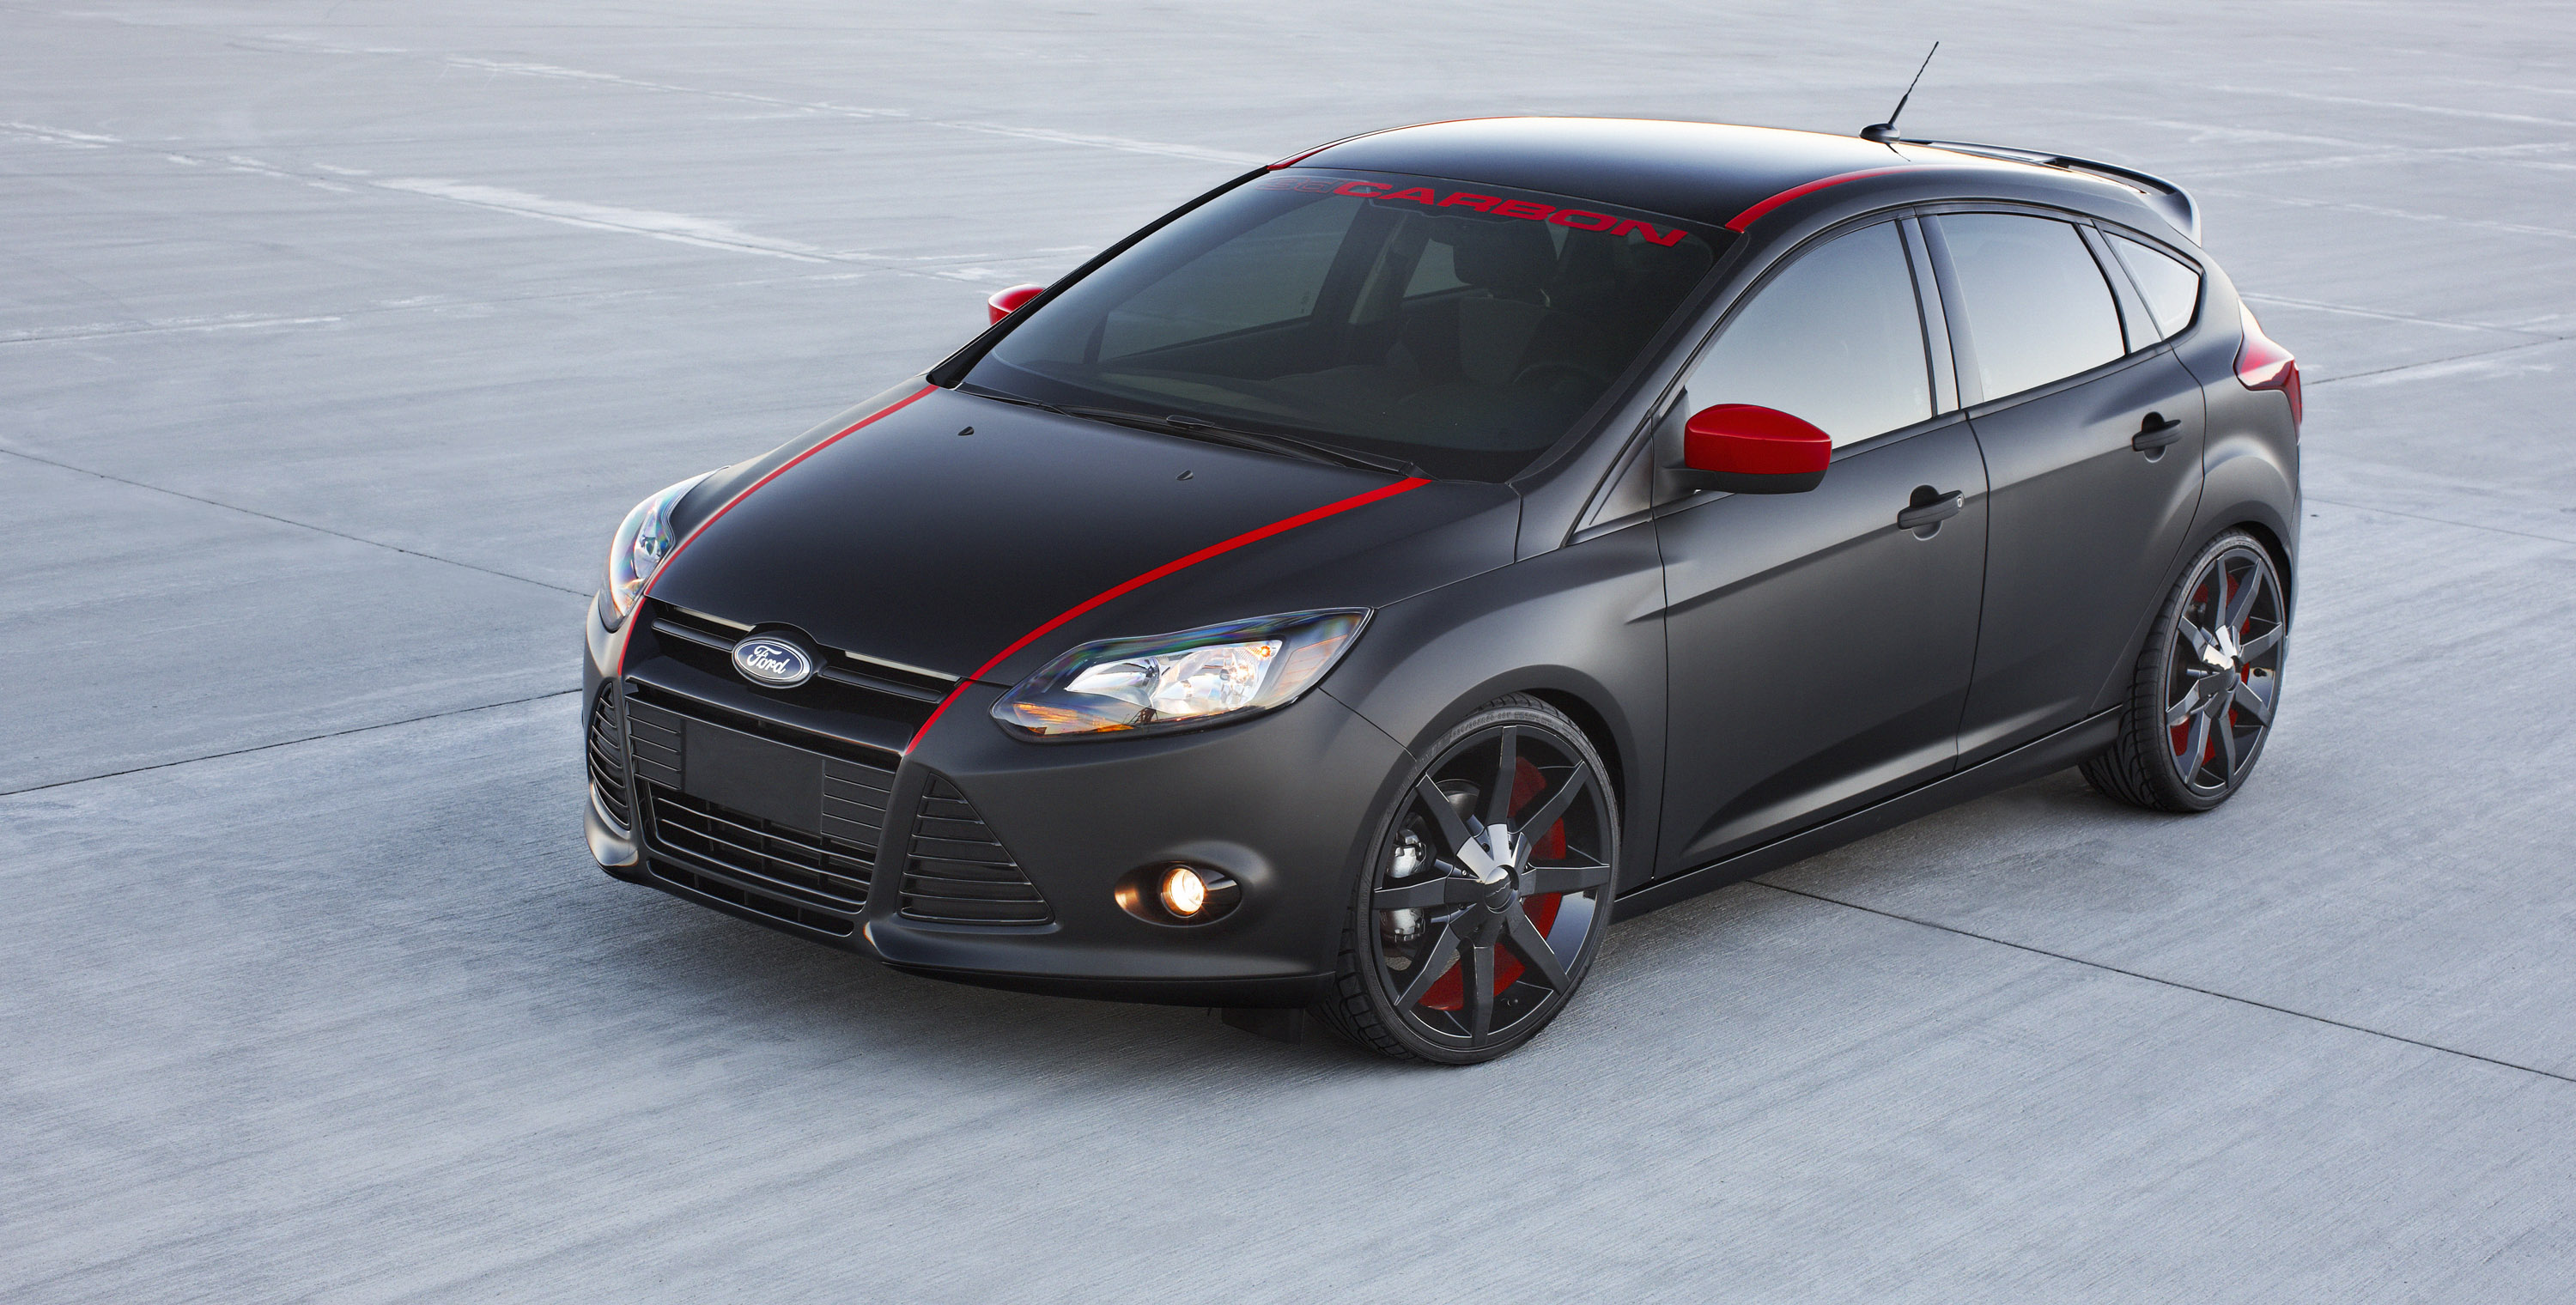 2012 ford focus special editions personalization fswerks and 3dcarbon. Black Bedroom Furniture Sets. Home Design Ideas